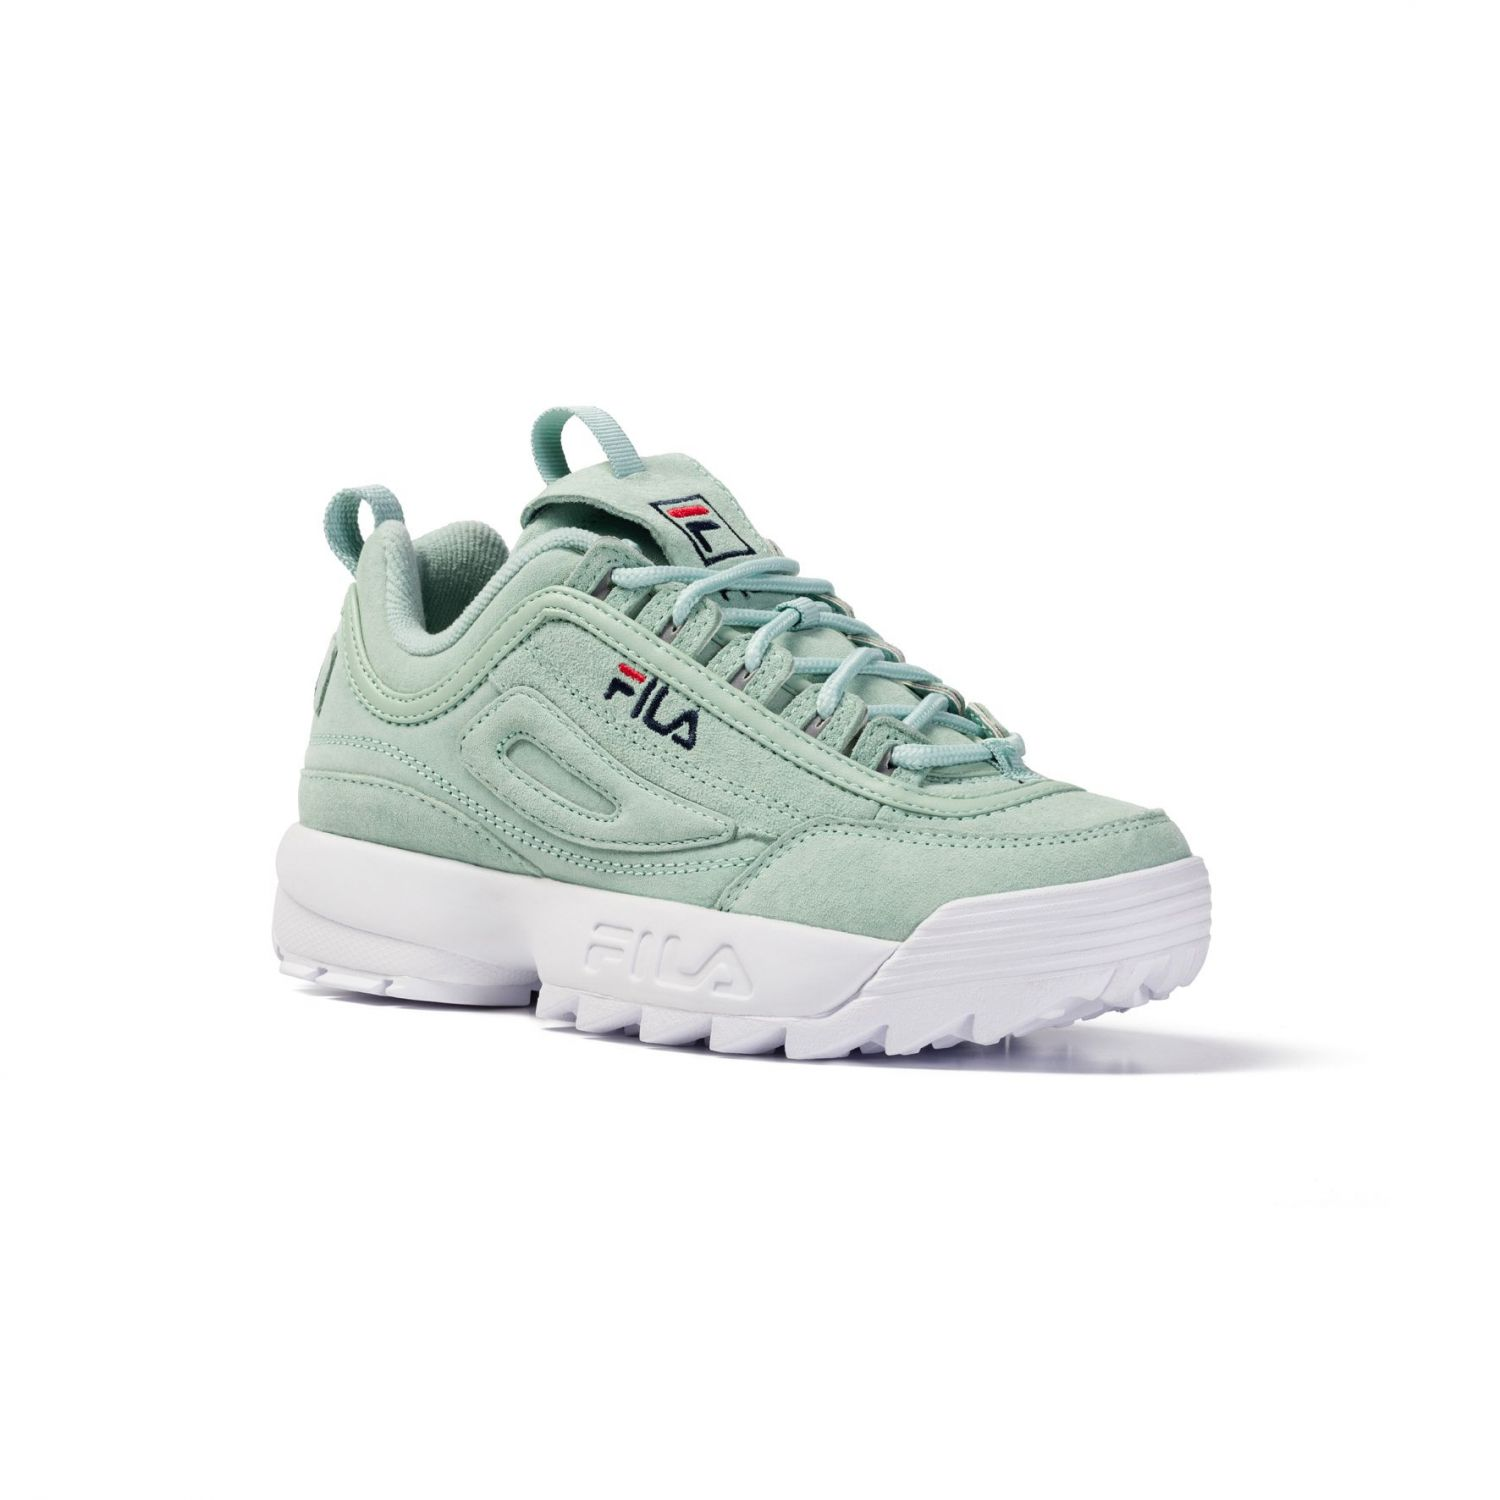 677d27a8bc63 Fila - Disruptor S Low Wmn pastel turquoise - 000142...